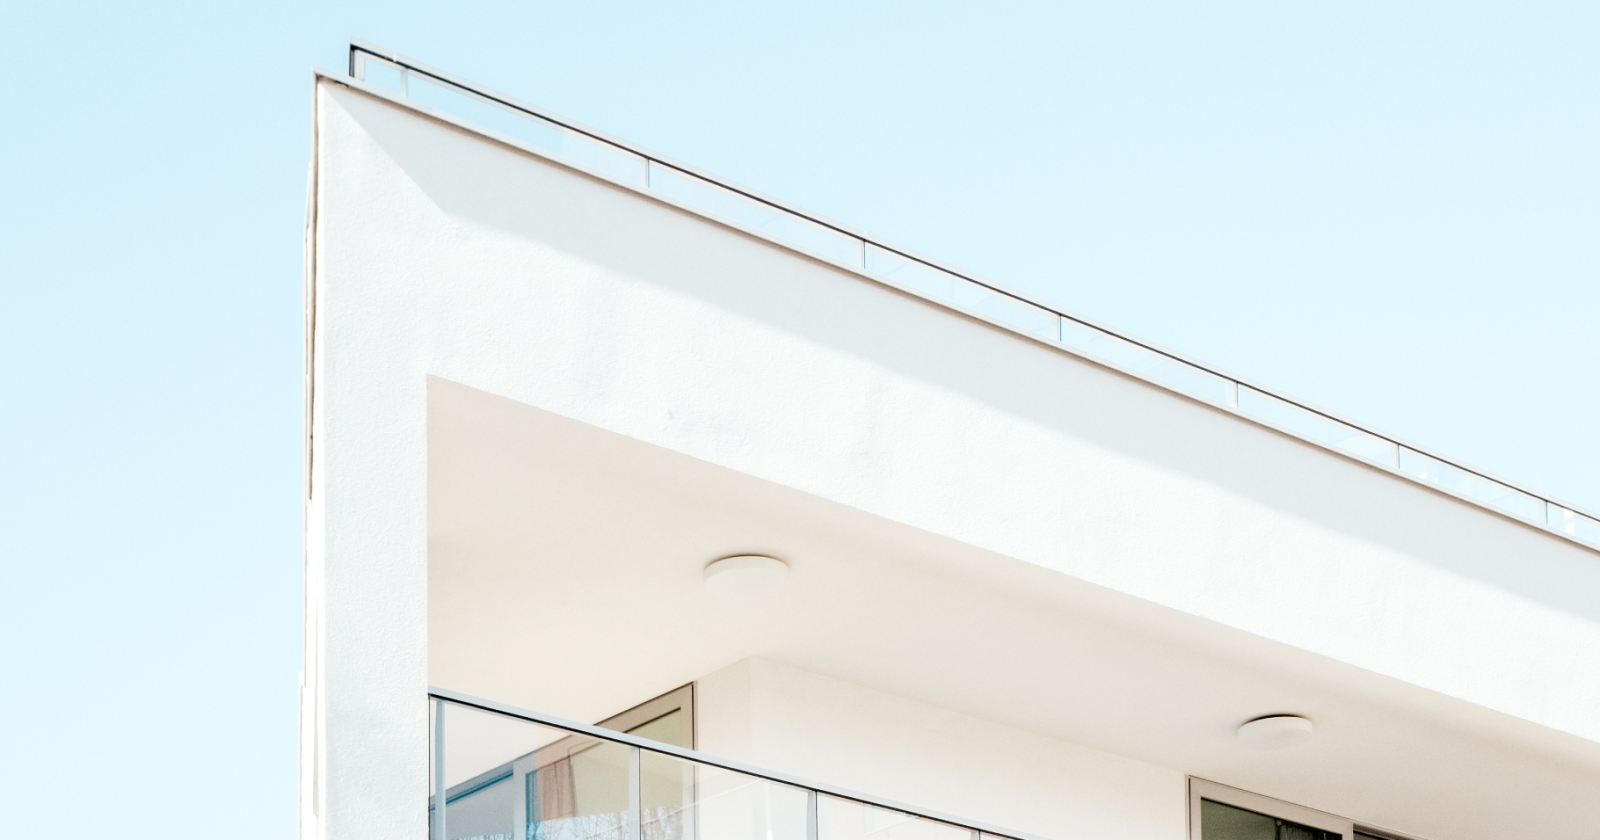 preparing for your first mortgage